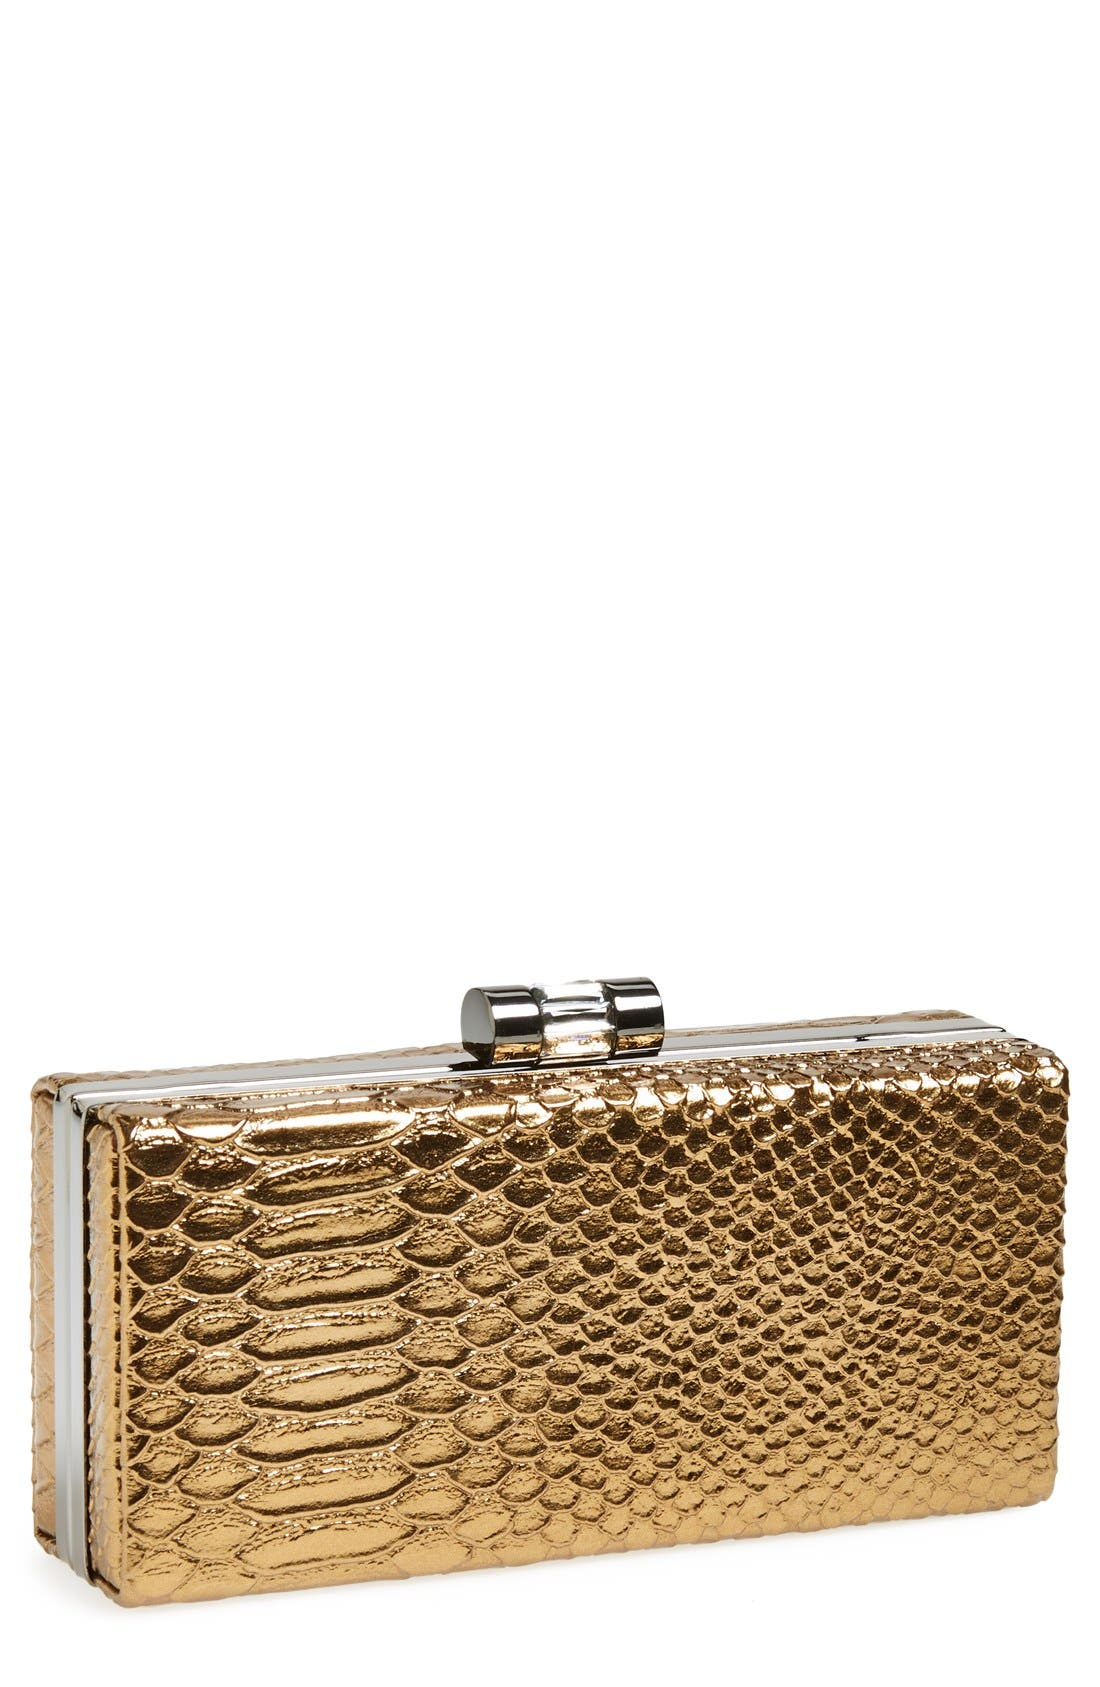 Main Image - Jessica McClintock Snake Embossed Box Clutch